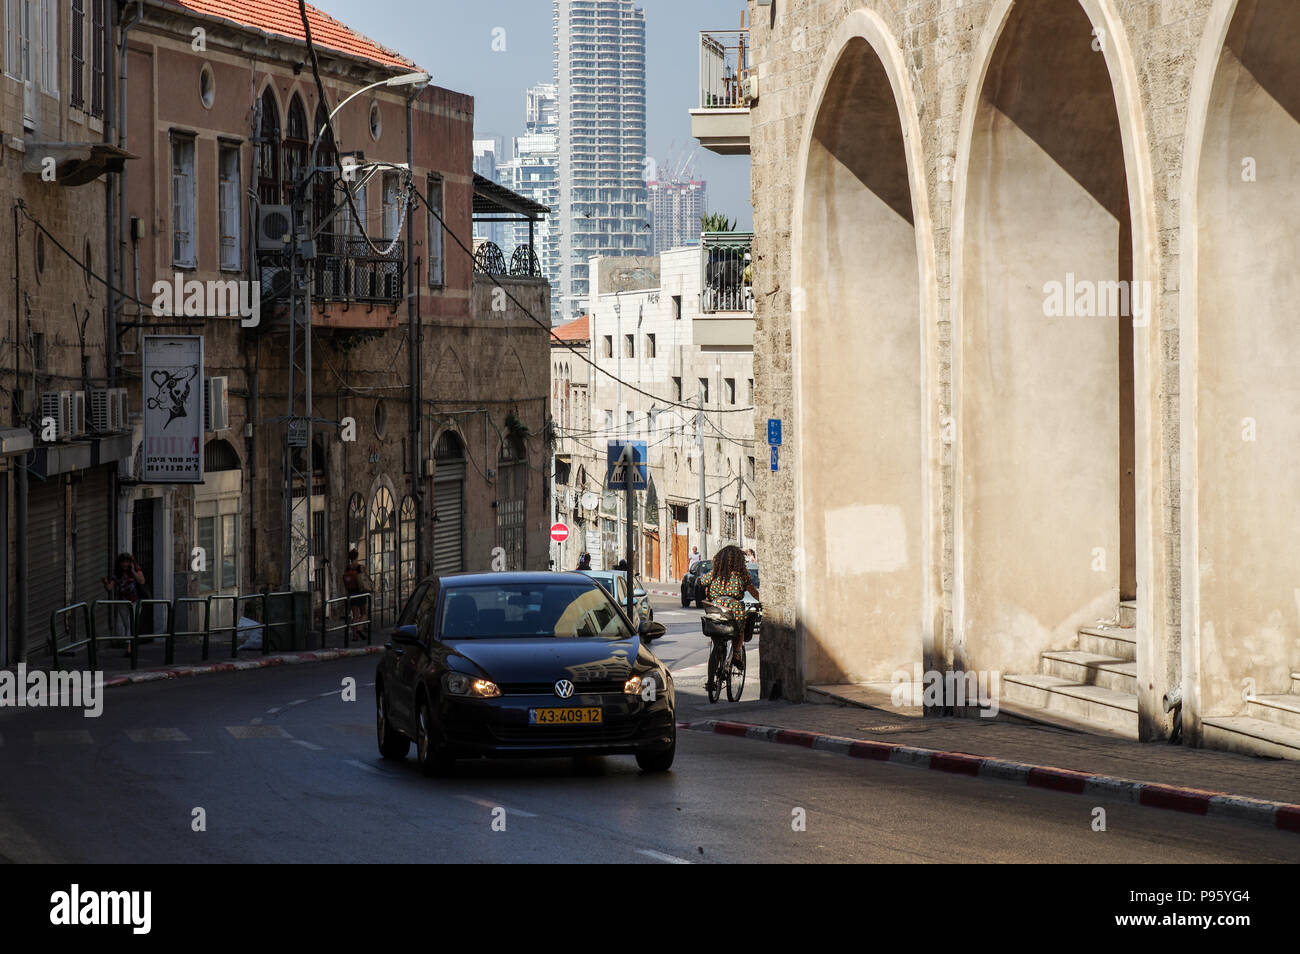 Charming contrast of the old town Jaffa and the modern skyline of Tel Aviv in the background - Tel Aviv, Israel - Stock Image